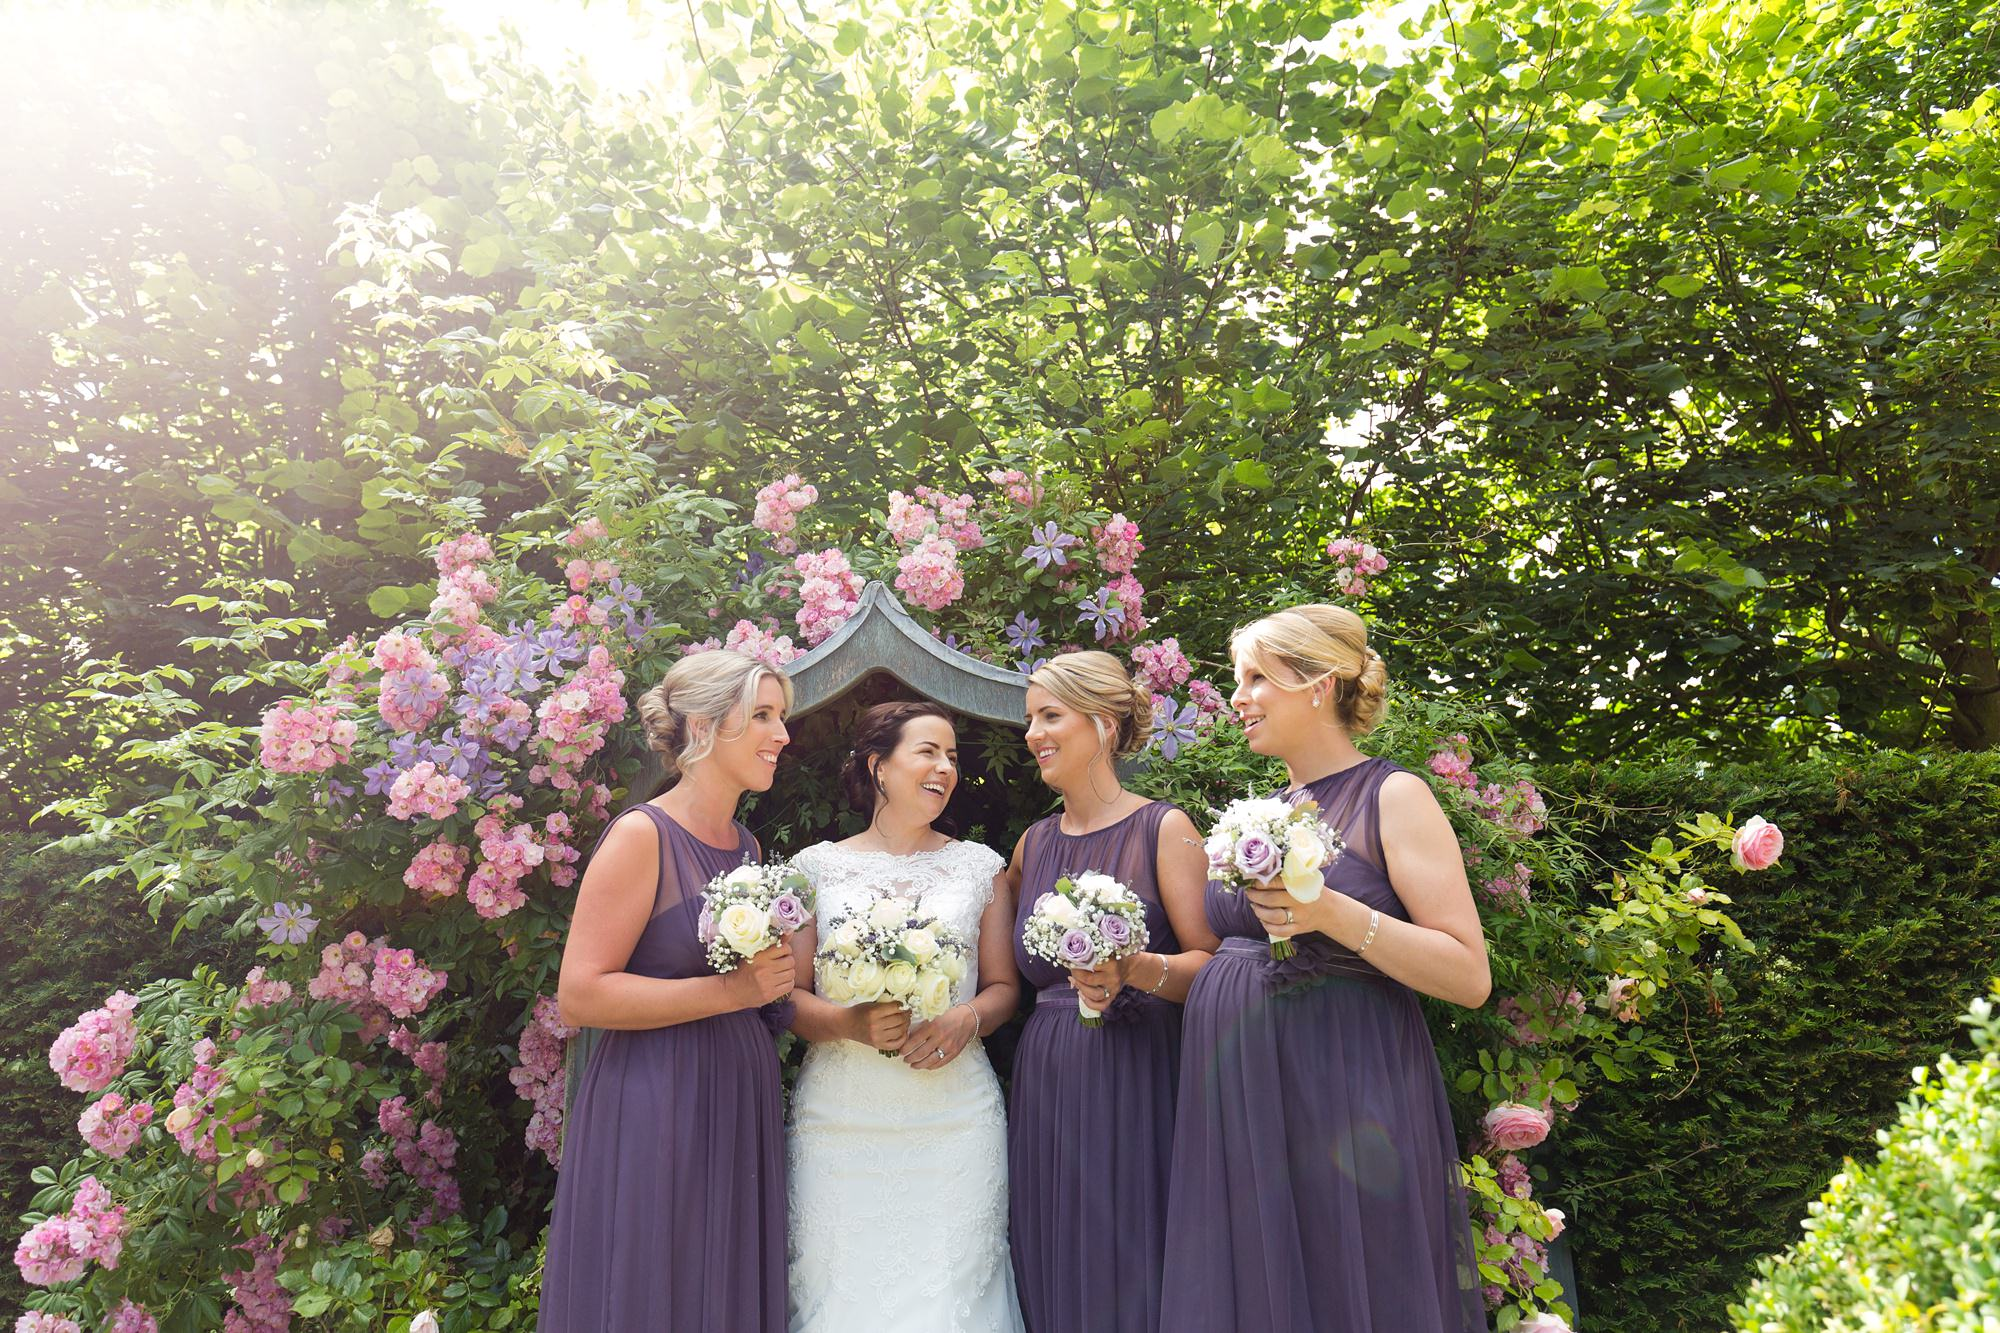 Bell Hall Wedding Photography bride and bridesmaids in purple dresses in front of hydrangeas